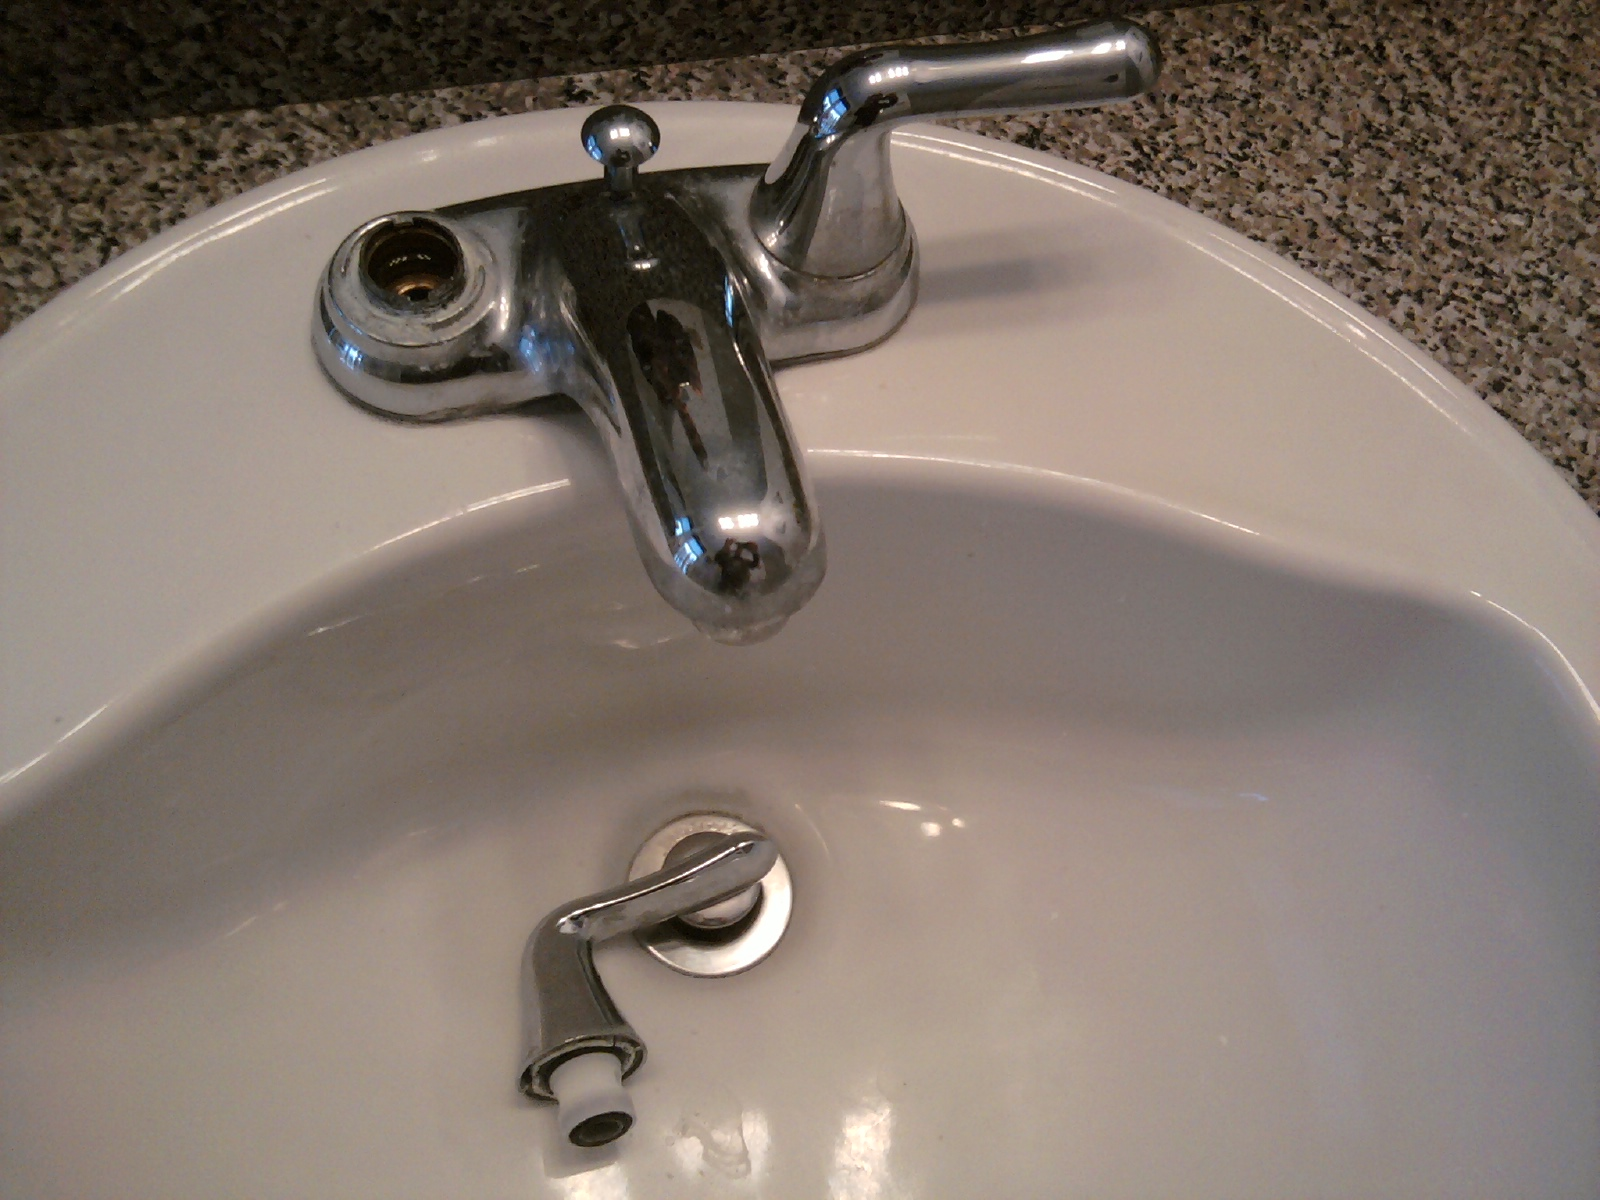 Replacing a Bathroom Faucet and Drain - All About The House